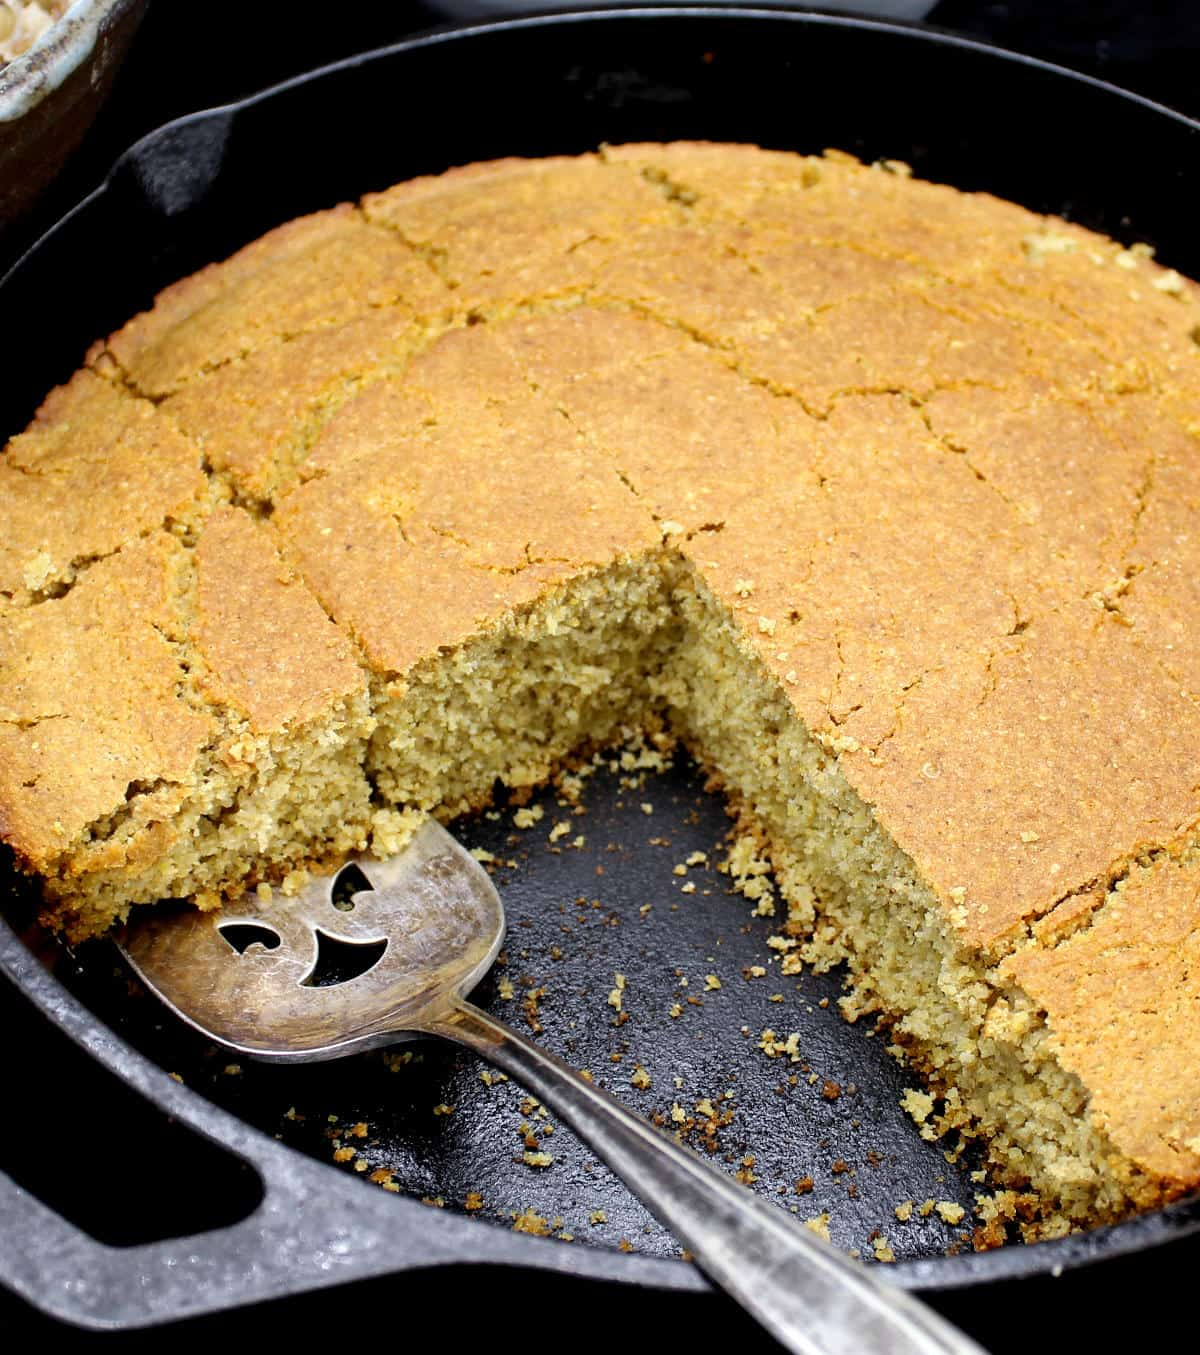 Cross section of vegan cornbread in a cast iron skillet.